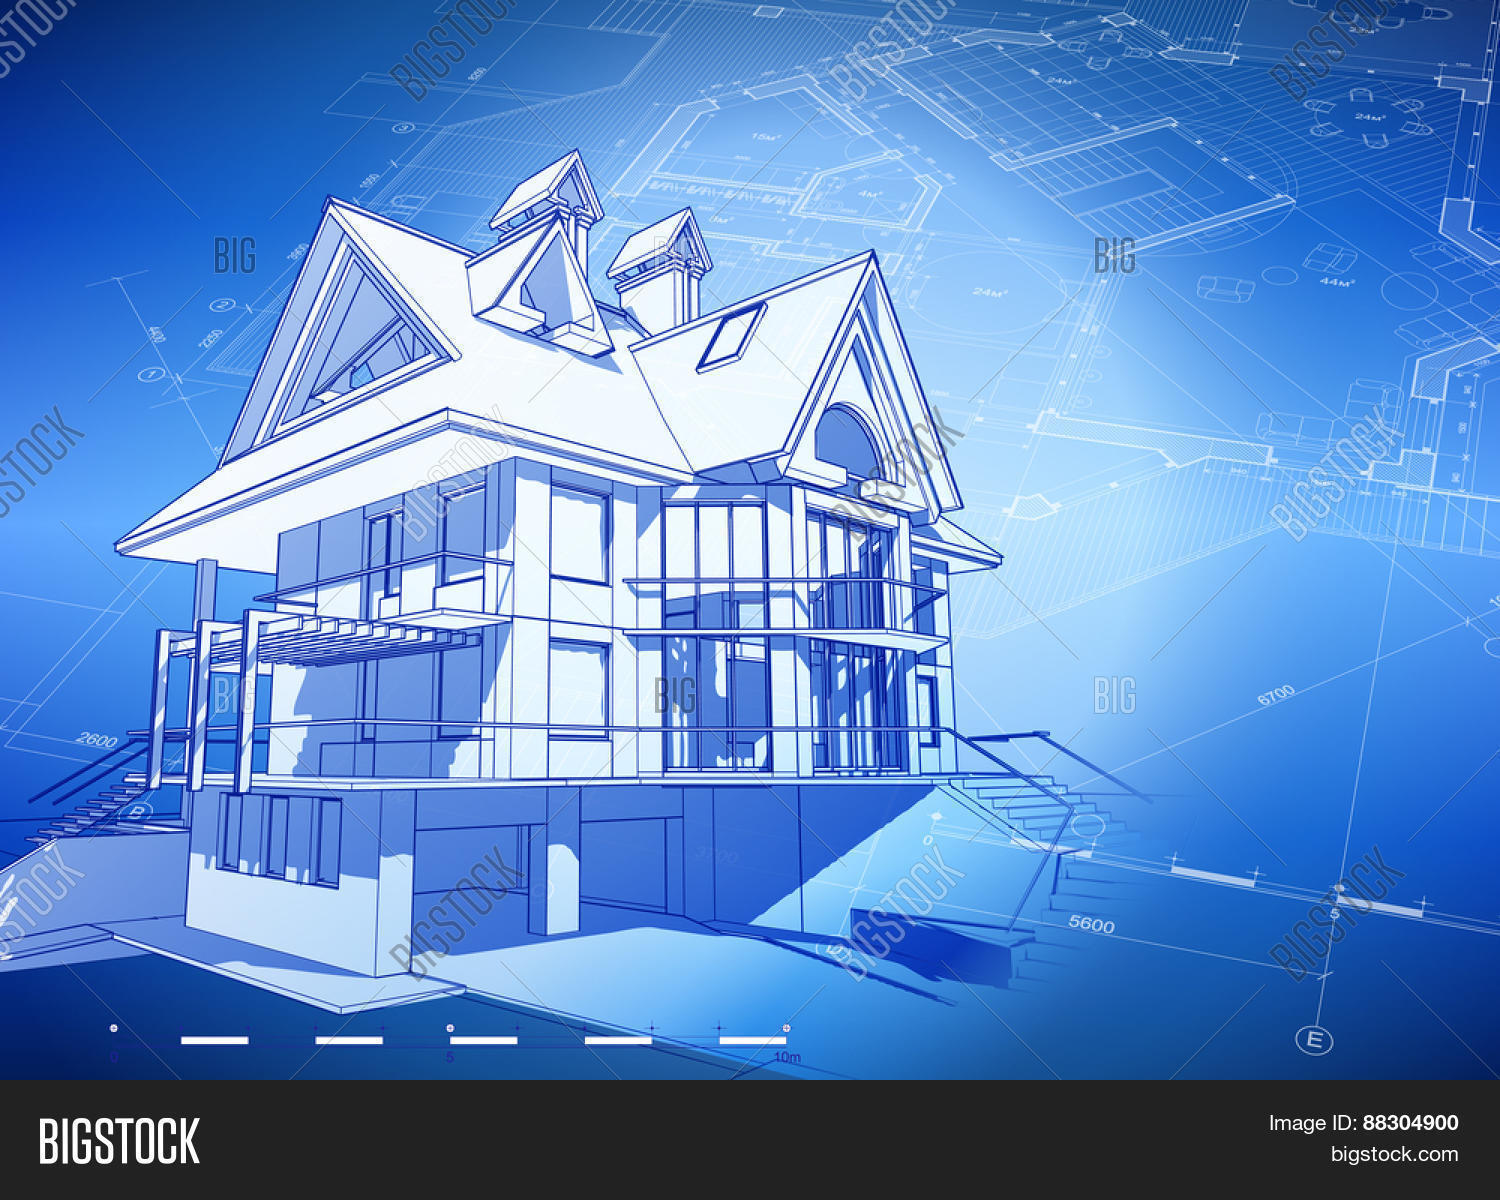 Architecture design blueprint 3d vector photo bigstock for Building design images